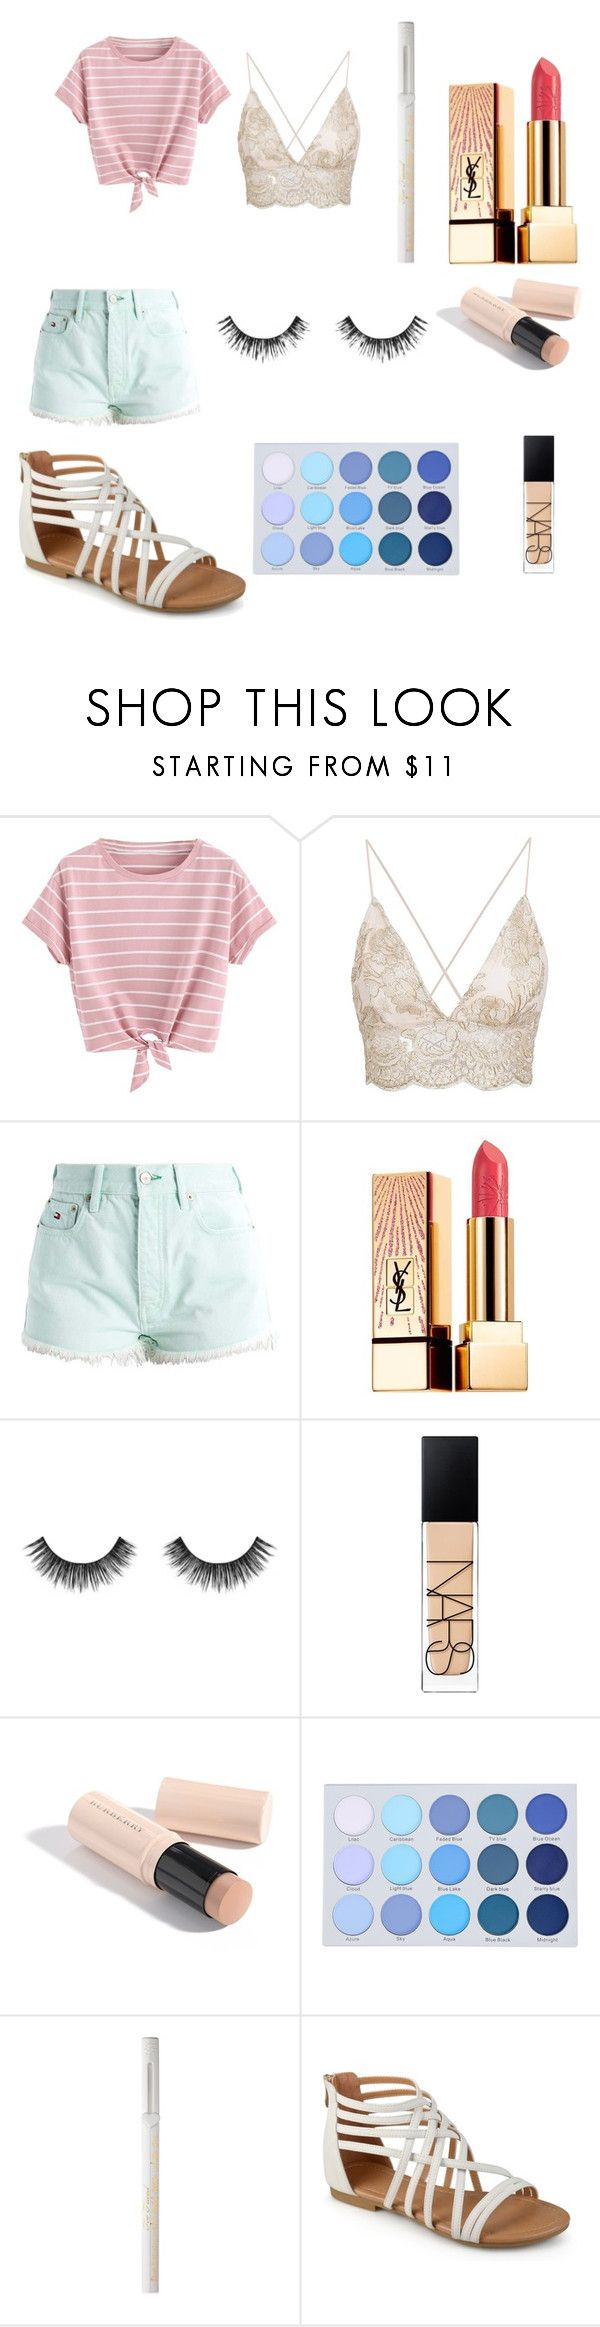 """Pastel summer"" by justaailurophile ❤ liked on Polyvore featuring Hilfiger Denim, Yves Saint Laurent, Velour Lashes, NARS Cosmetics, Burberry and Too Faced Cosmetics"